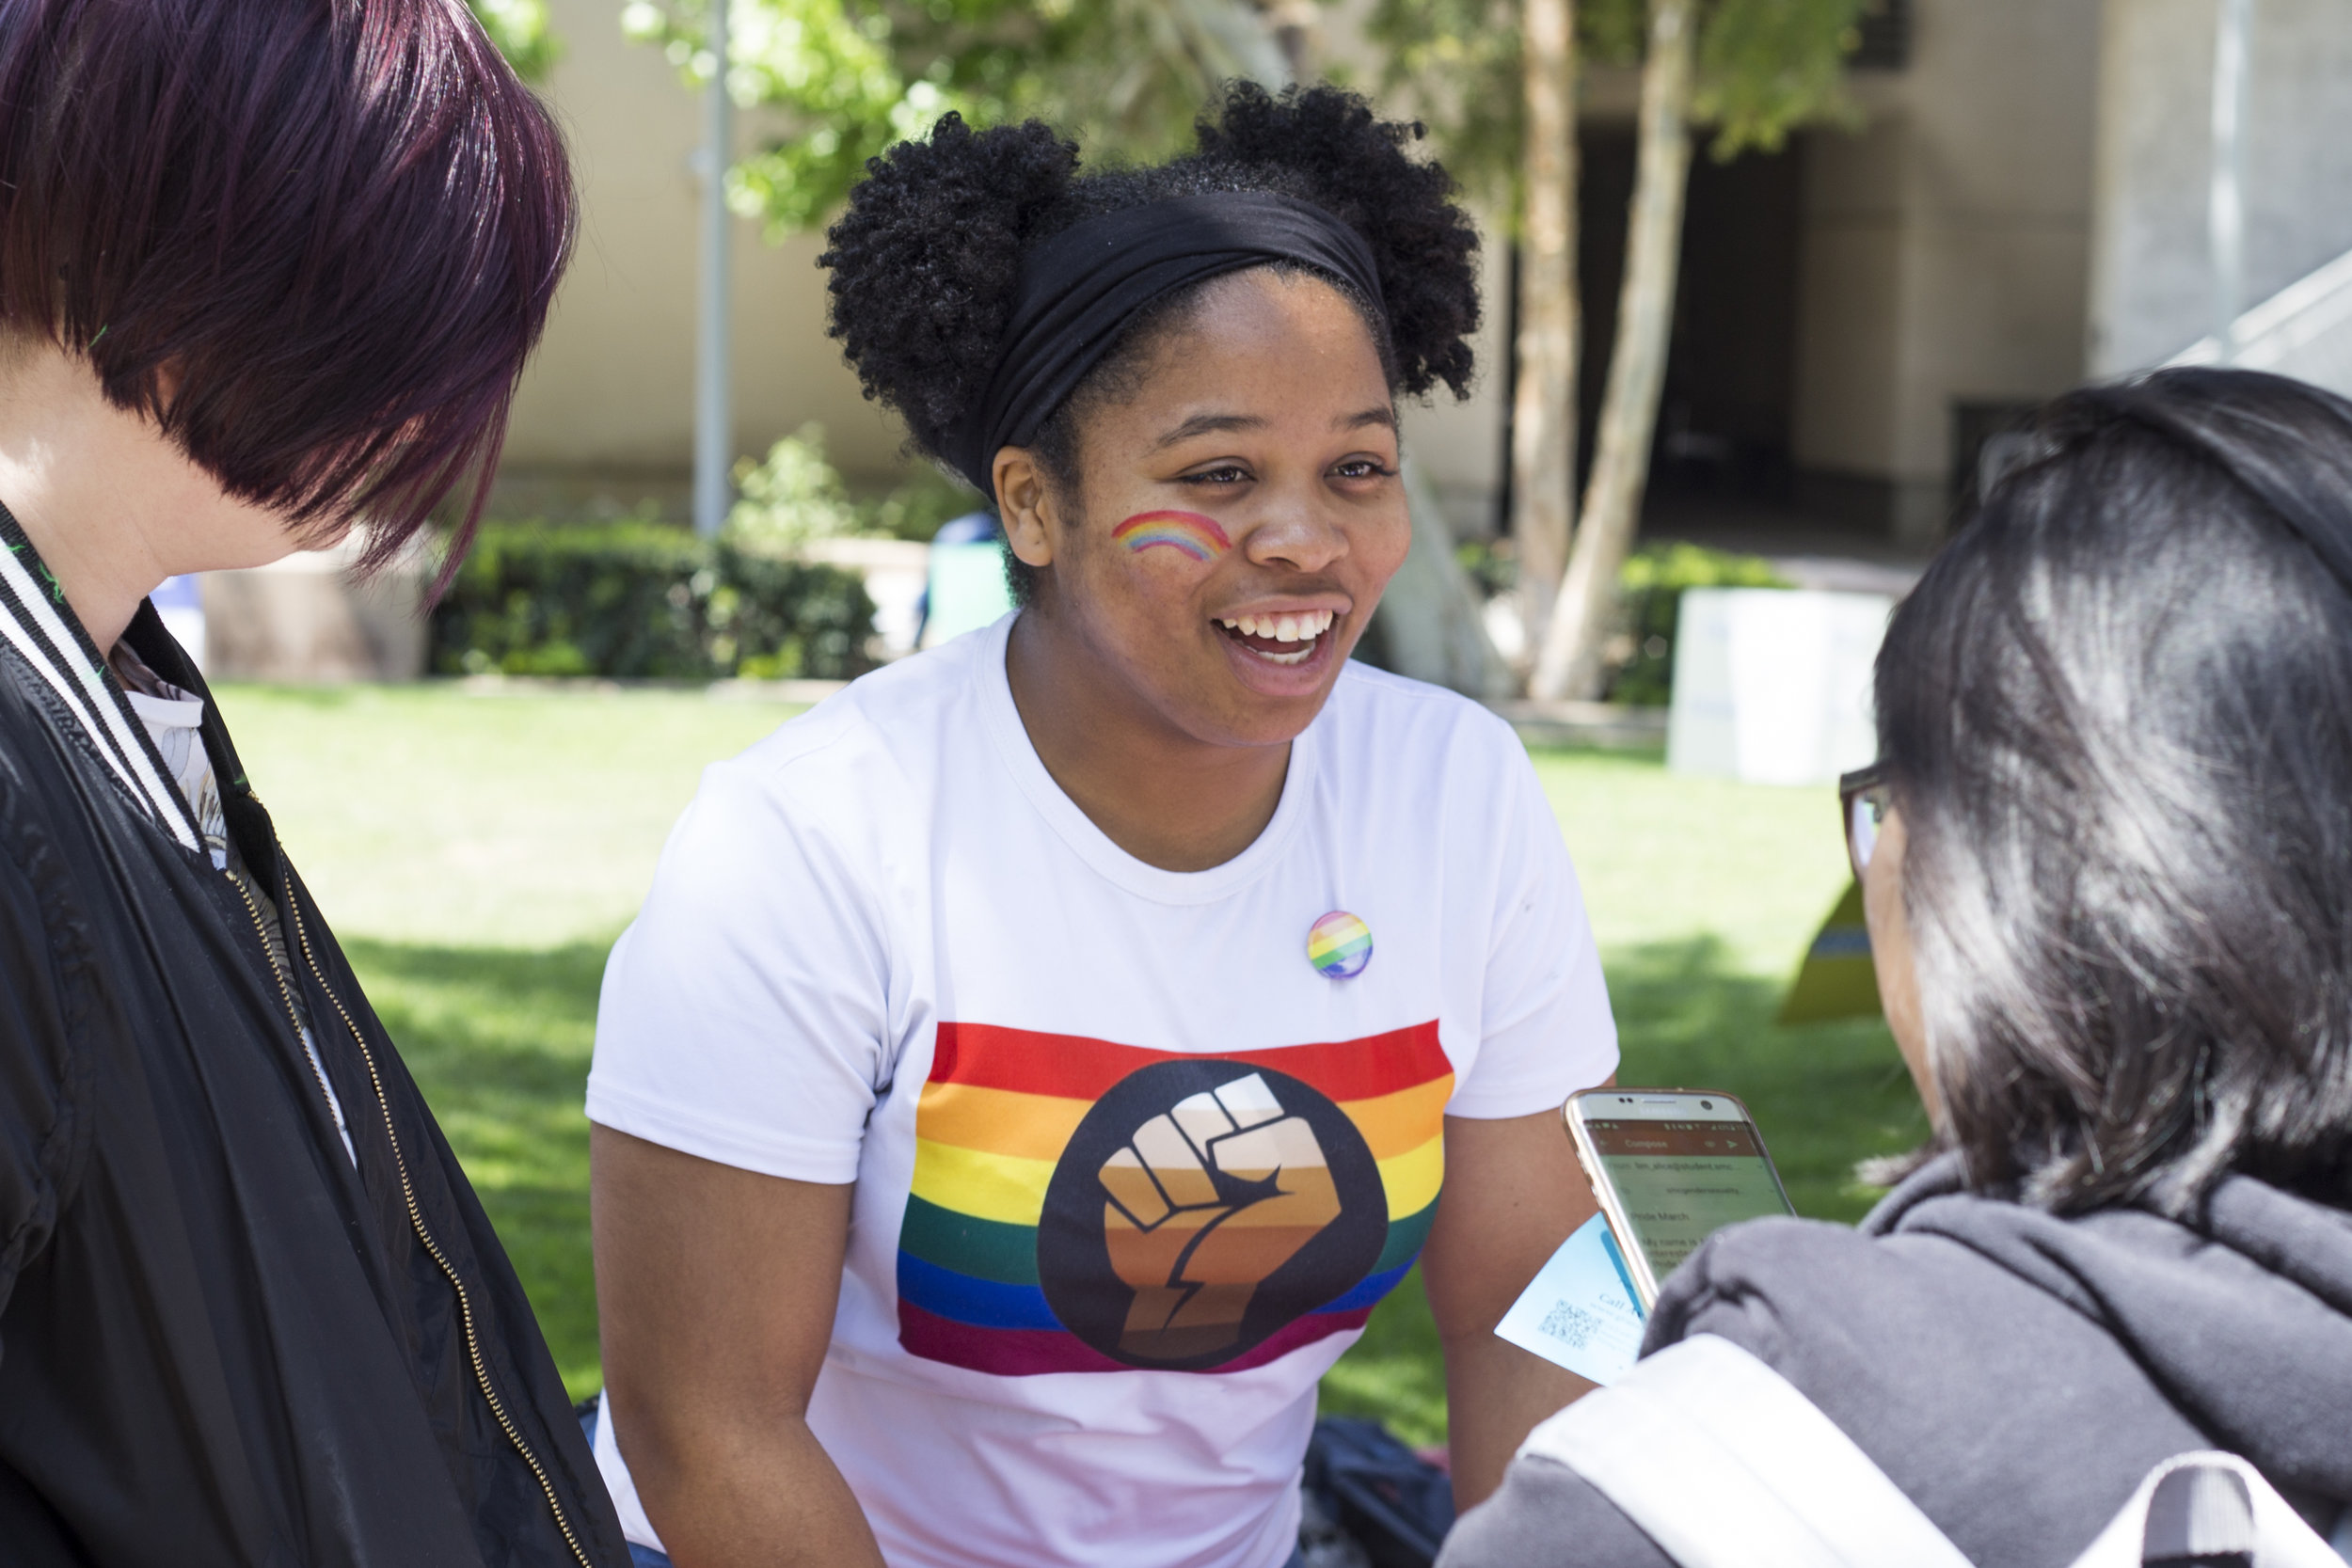 """Santa Monica College (SMC) Pride week event on Tuesday, May 15:  Elise """"Minnie"""" Gary talking to students about Pride Week activities on main campus. SMC Main Campus. Santa Monica, California. May 15, 2018. (Fernanda Rivera, Corsair Photo)."""